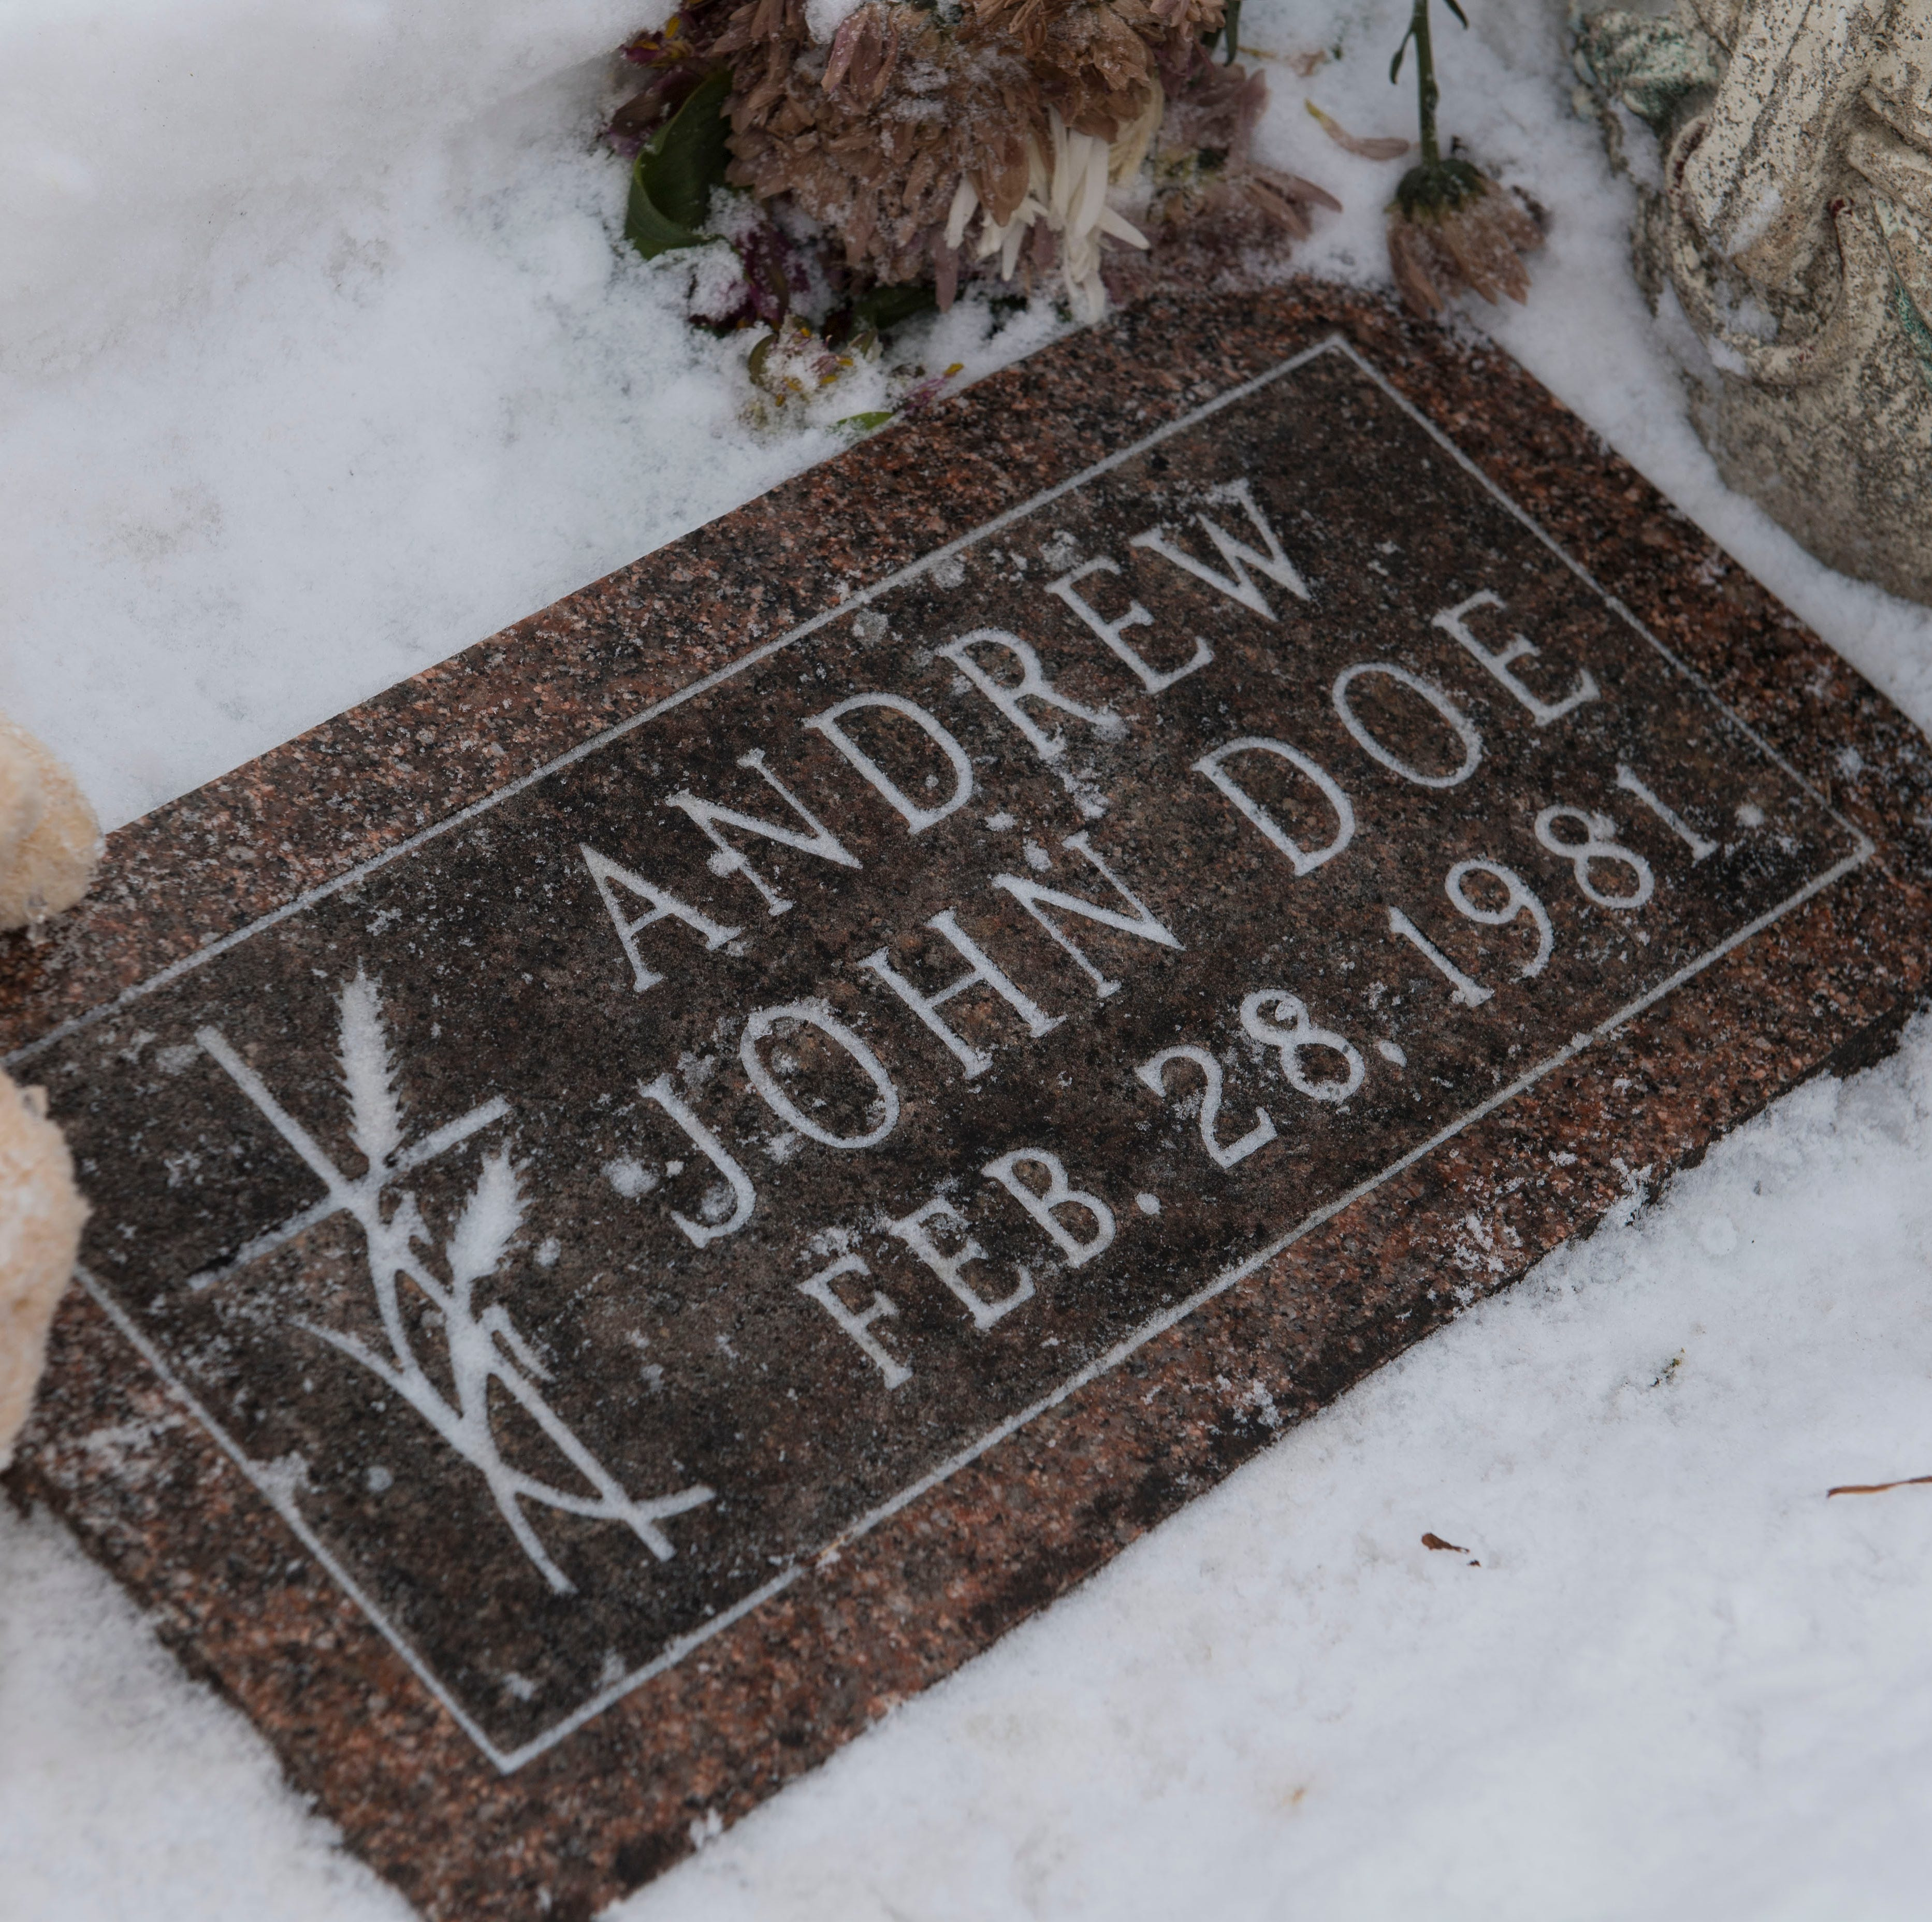 Baby Andrew cold case: Mother arrested in 1981 death of baby in Sioux Falls